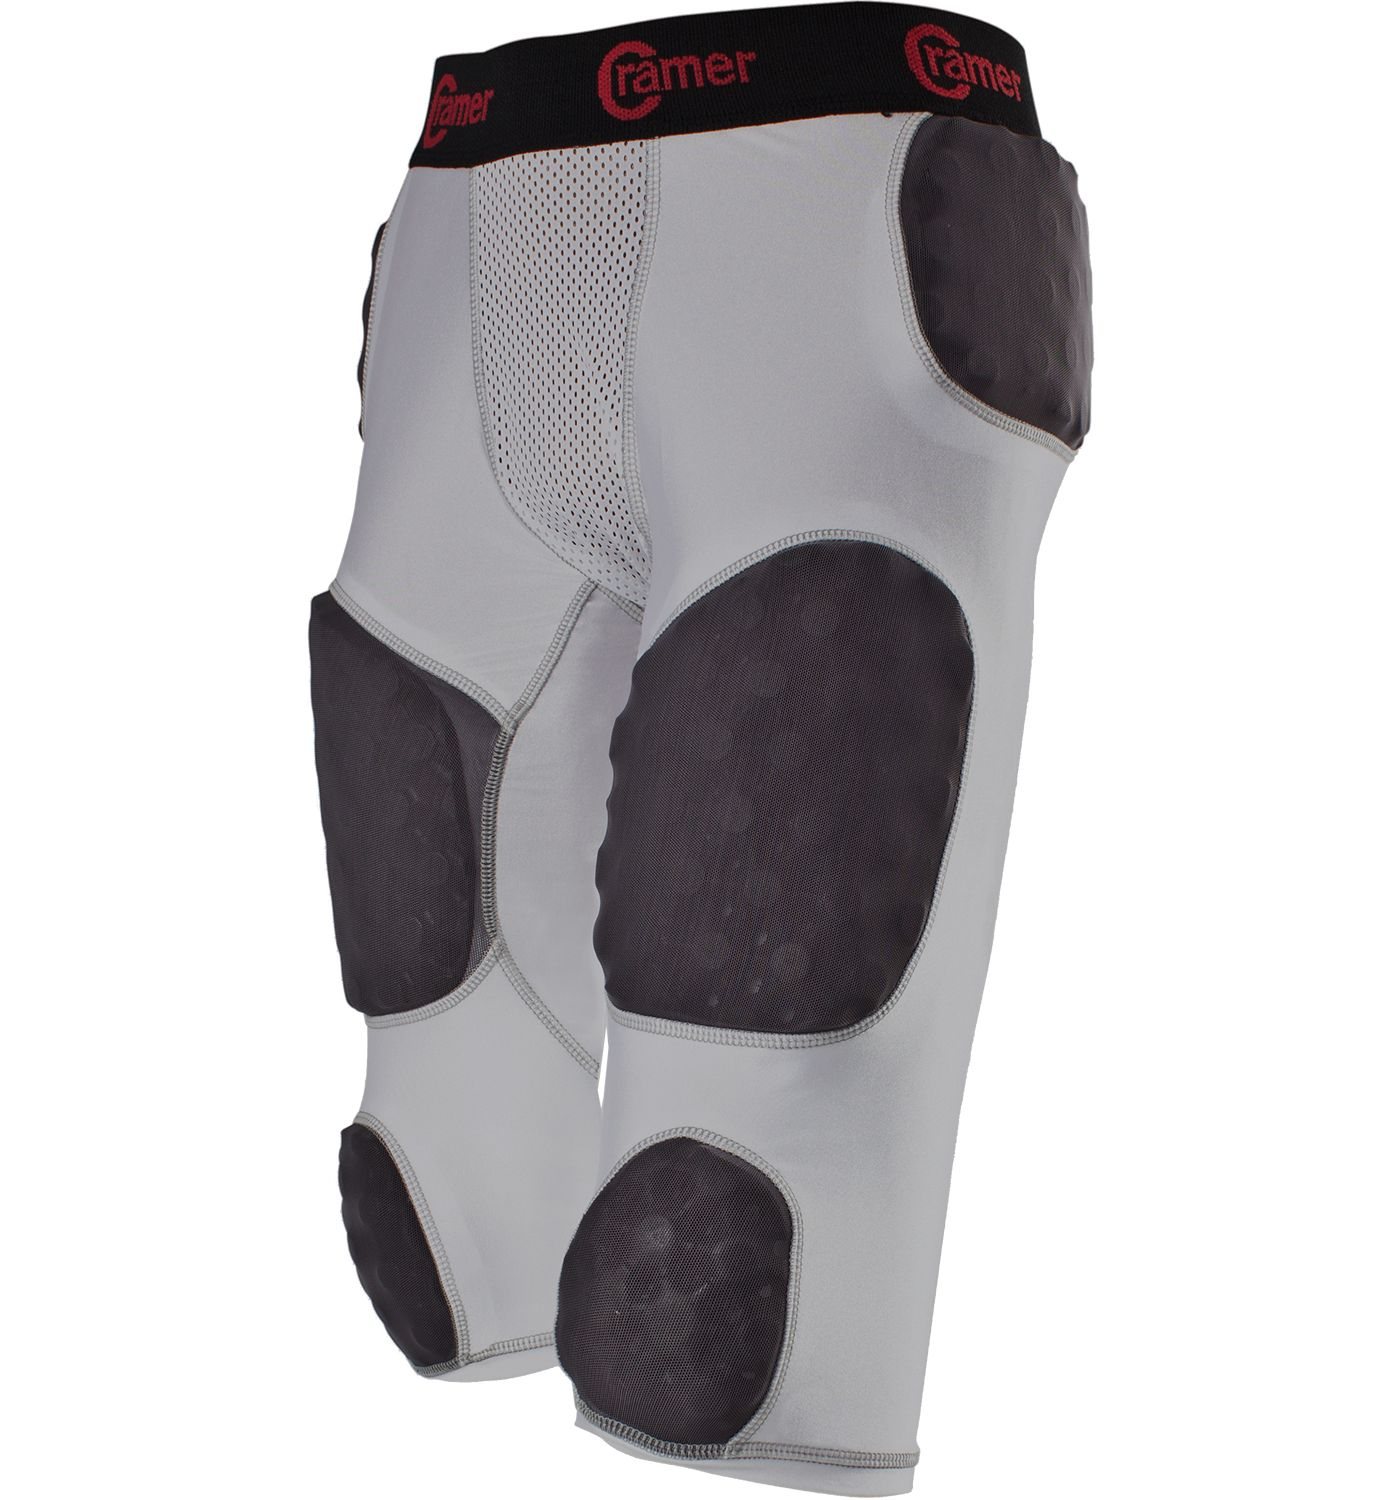 Cramer Skill 7 Integrated Football Pants